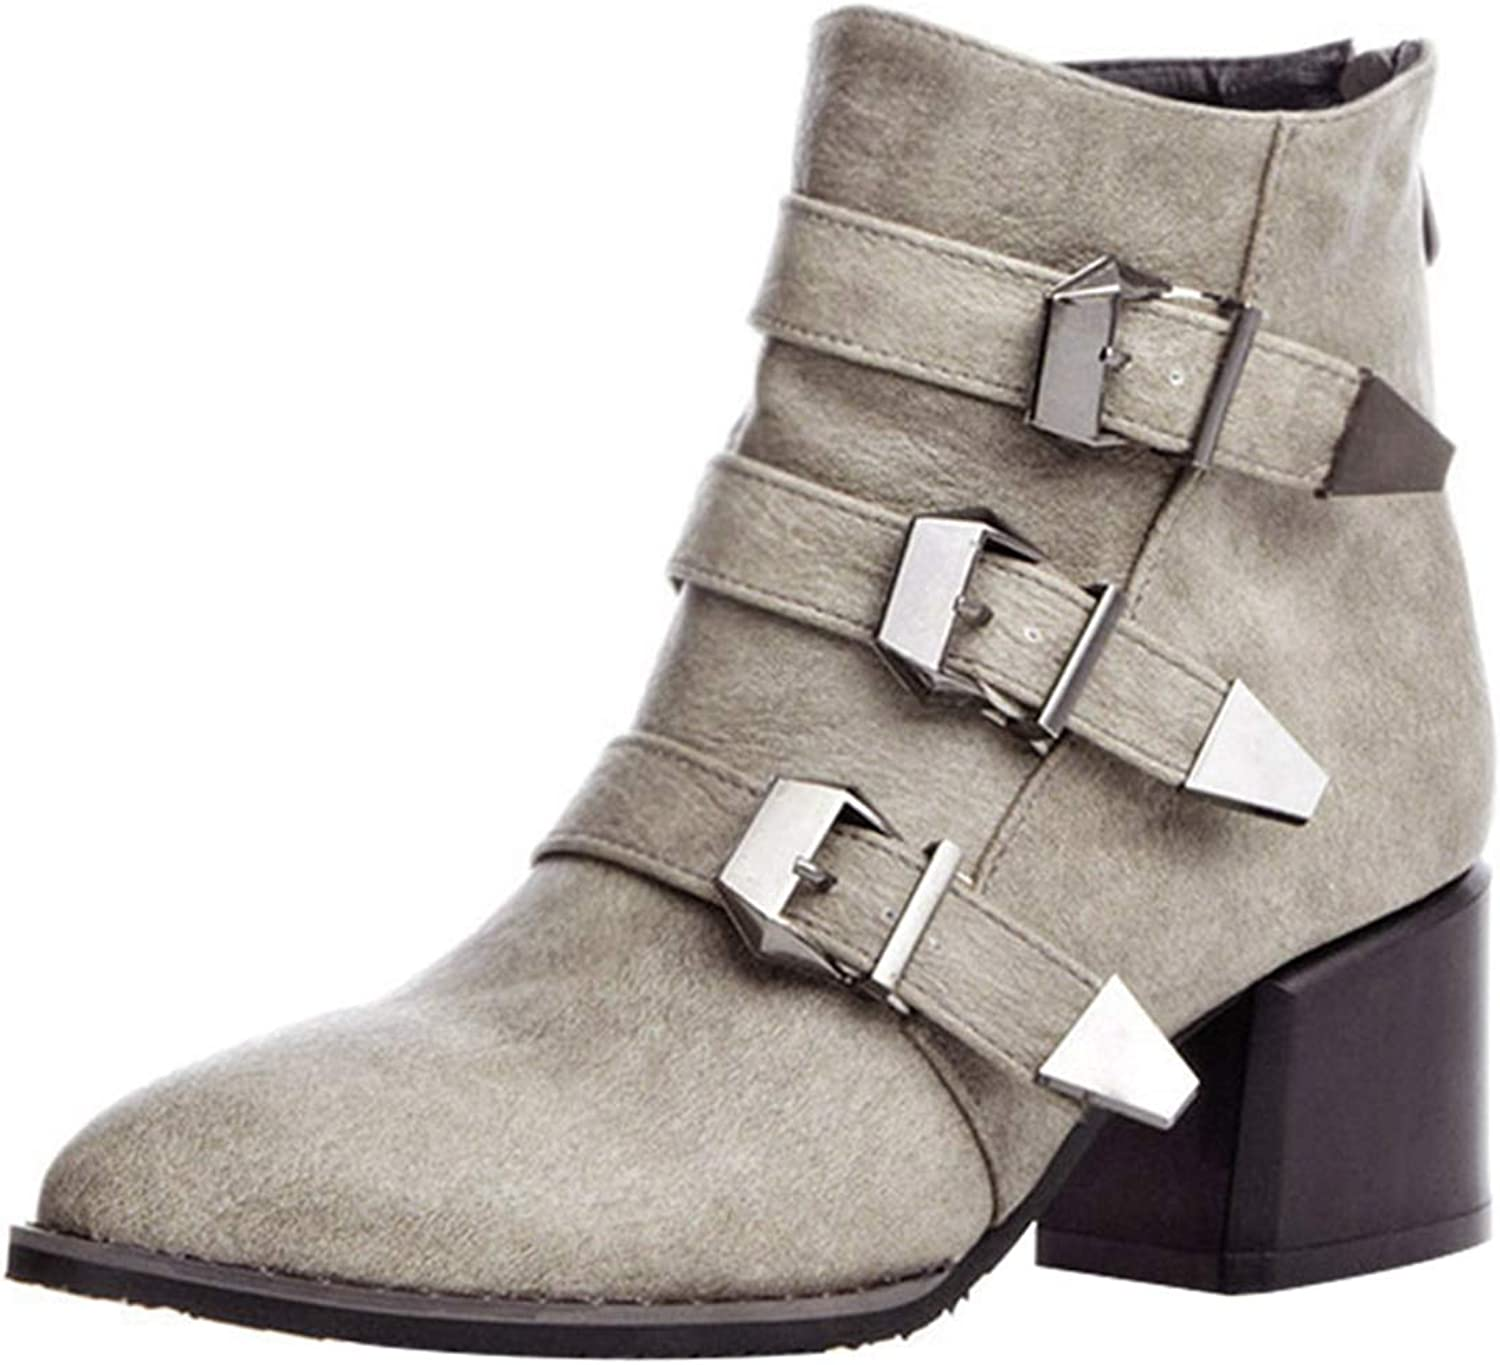 Vitalo Womens Mid Chunky Heel Pointed Toe Ankle Boots Zip Up Buckles Autumn Winter shoes